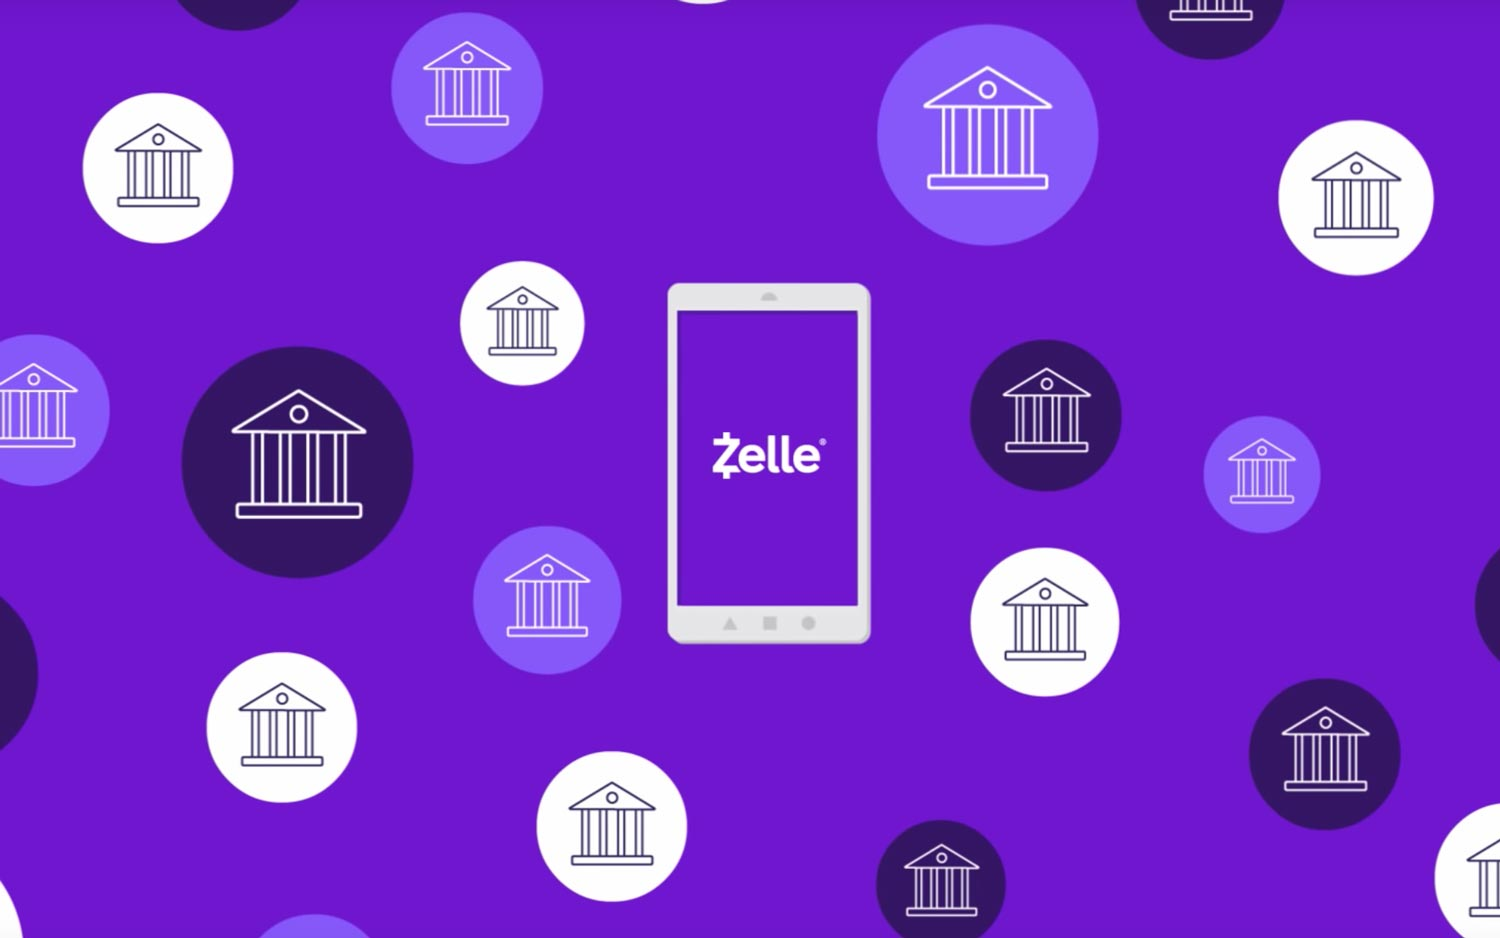 How to Use Zelle | Tom's Guide